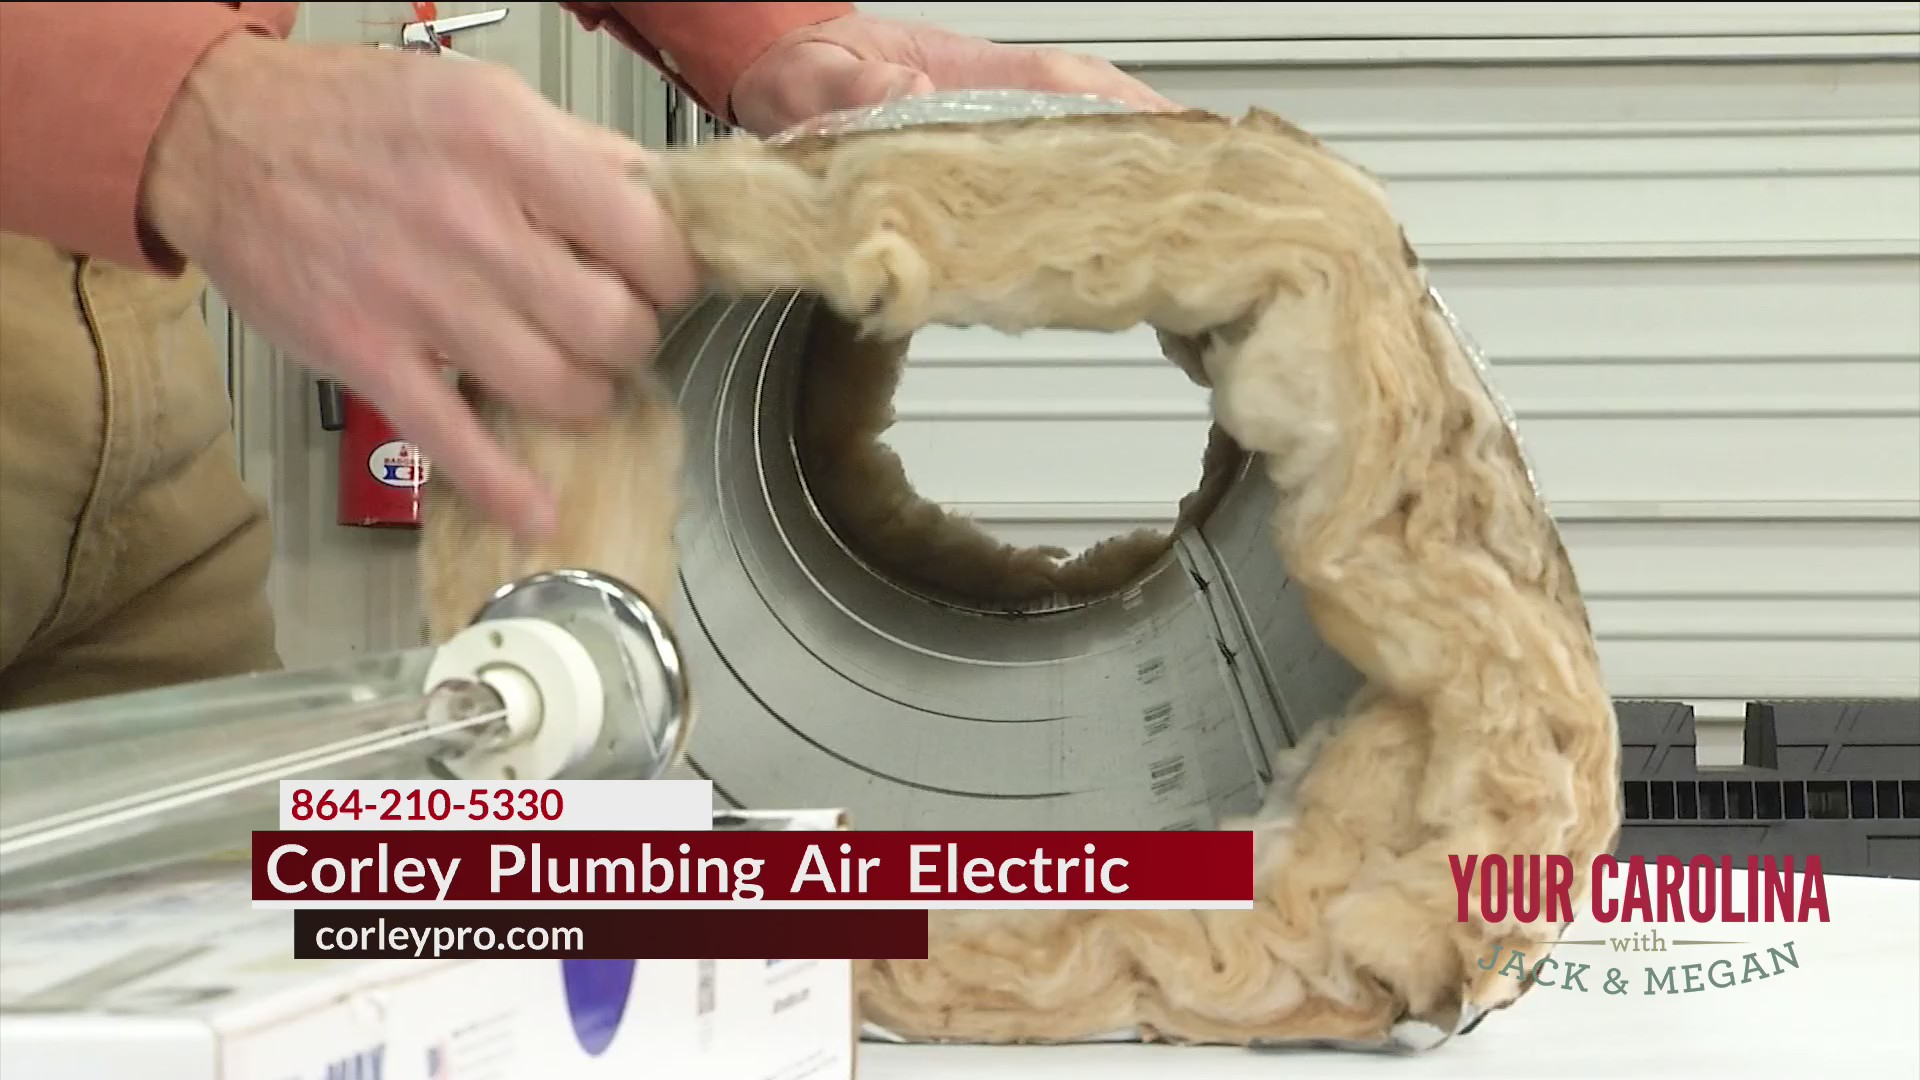 Corley Plumbing Air Electric - Clean Air In Your Home